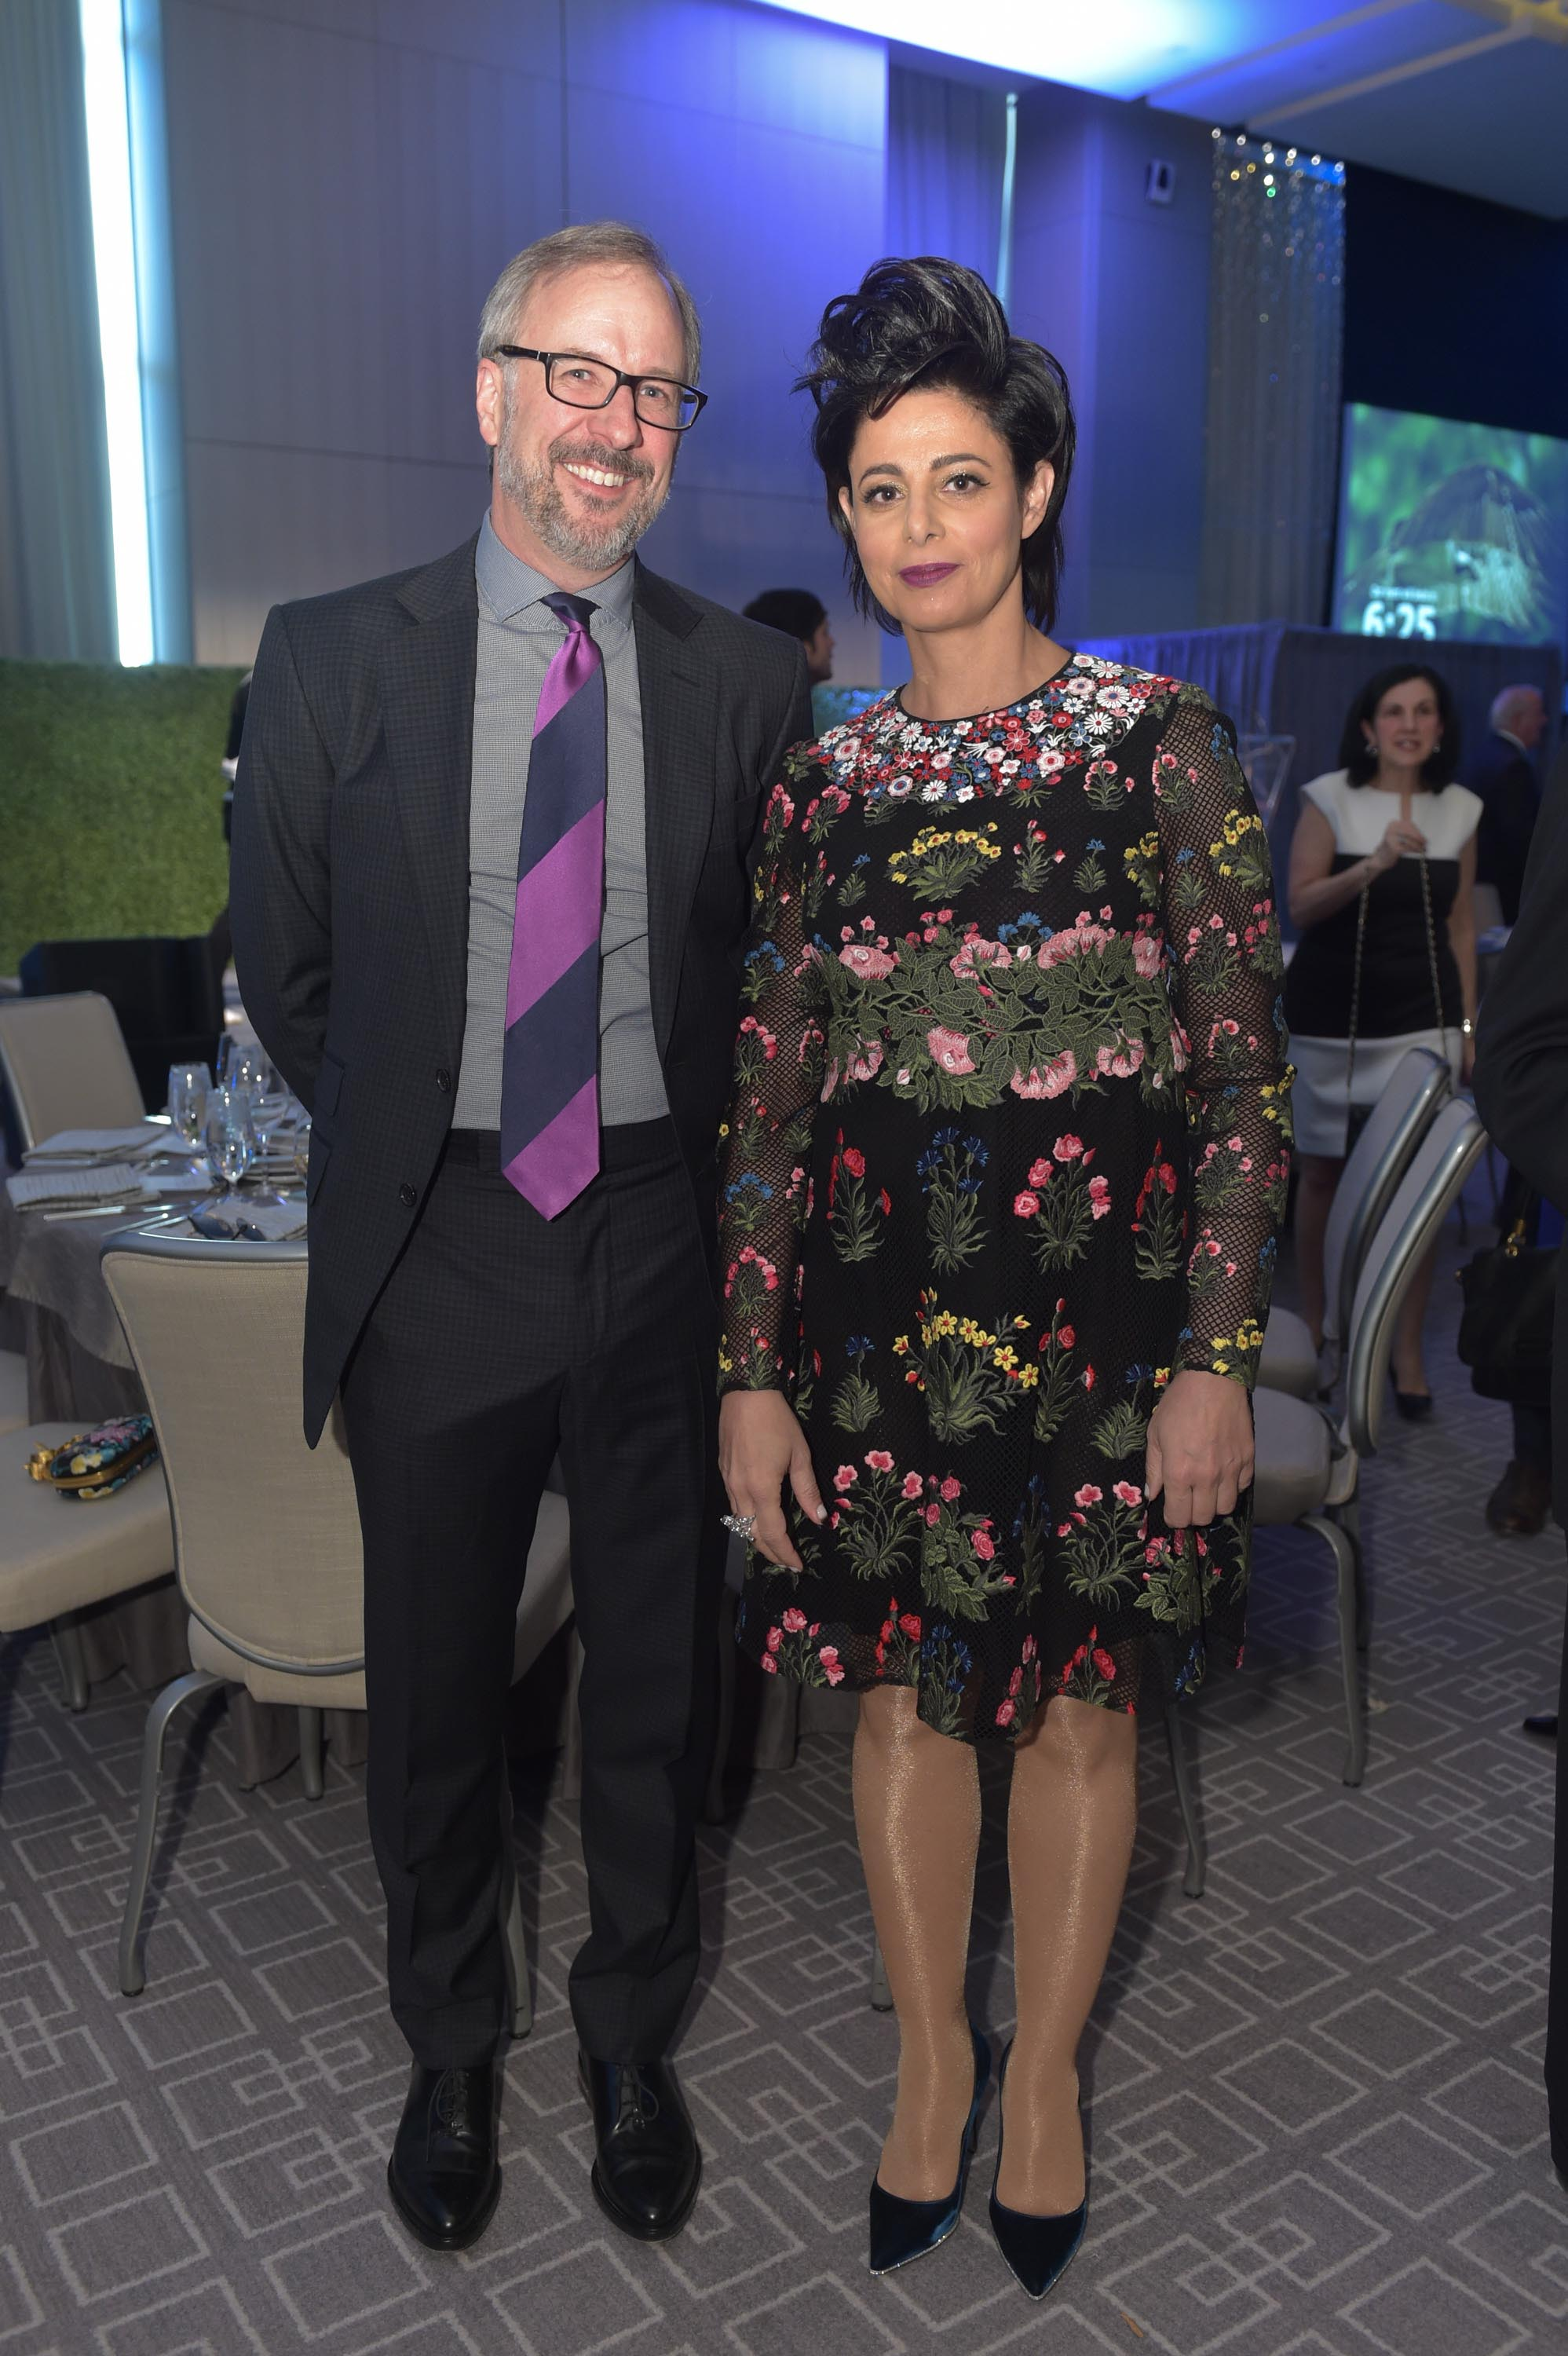 Marien Henein and Glen Jennings